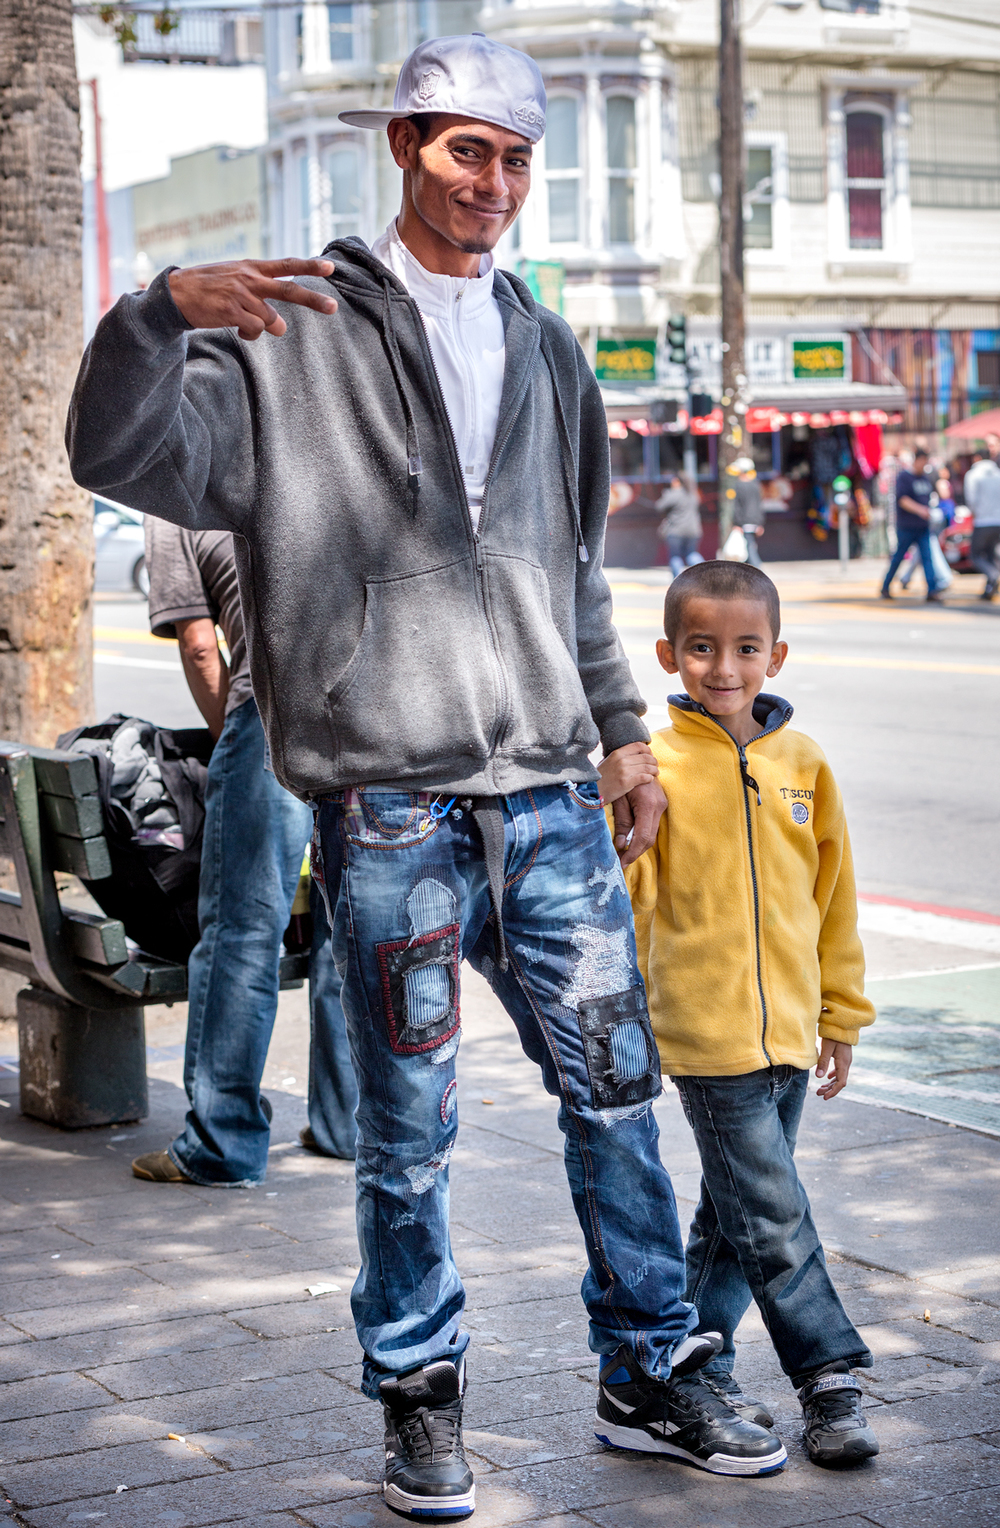 Street style is a family affair in the Mission